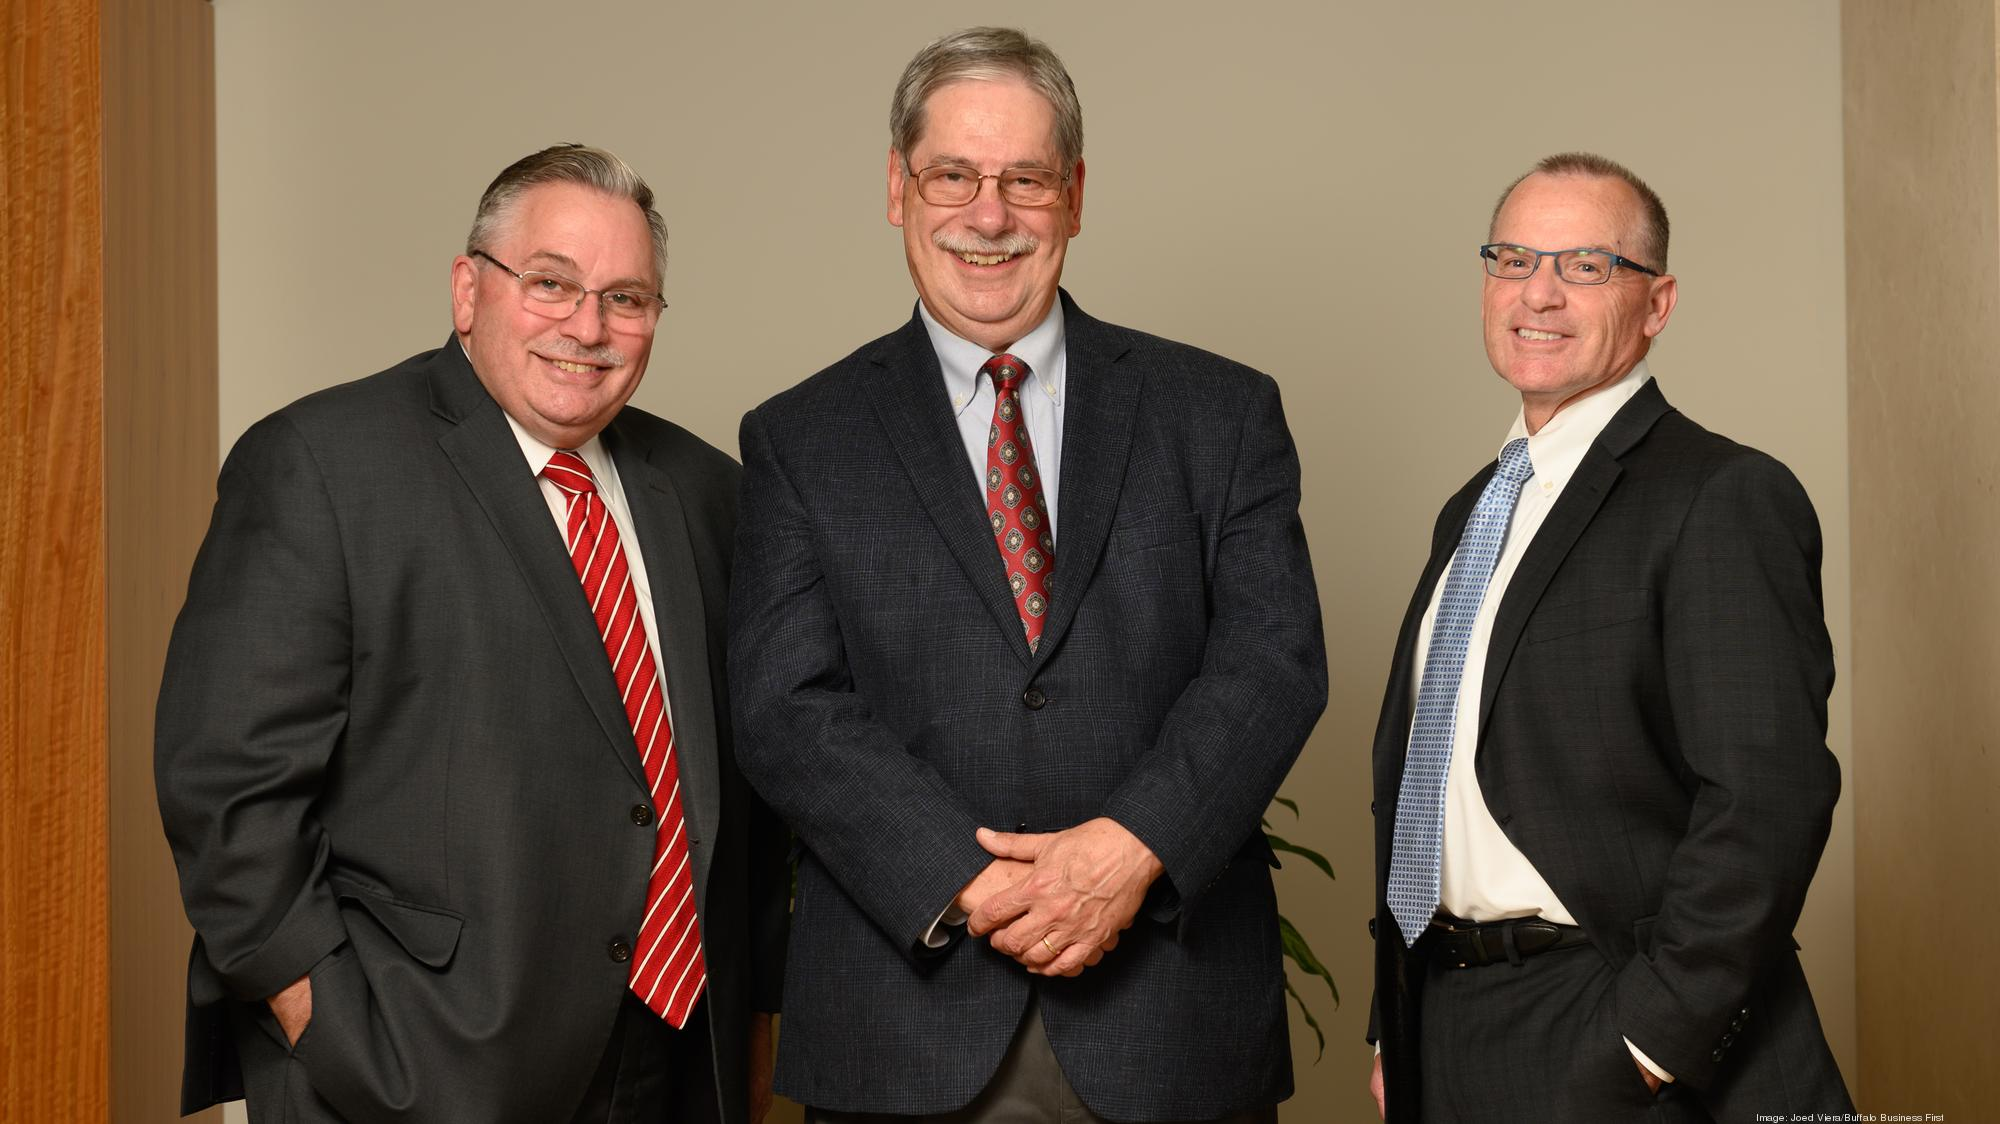 Phillips Lytle LLP attorneys Kenneth Manning, James Donathen and Kevin English.